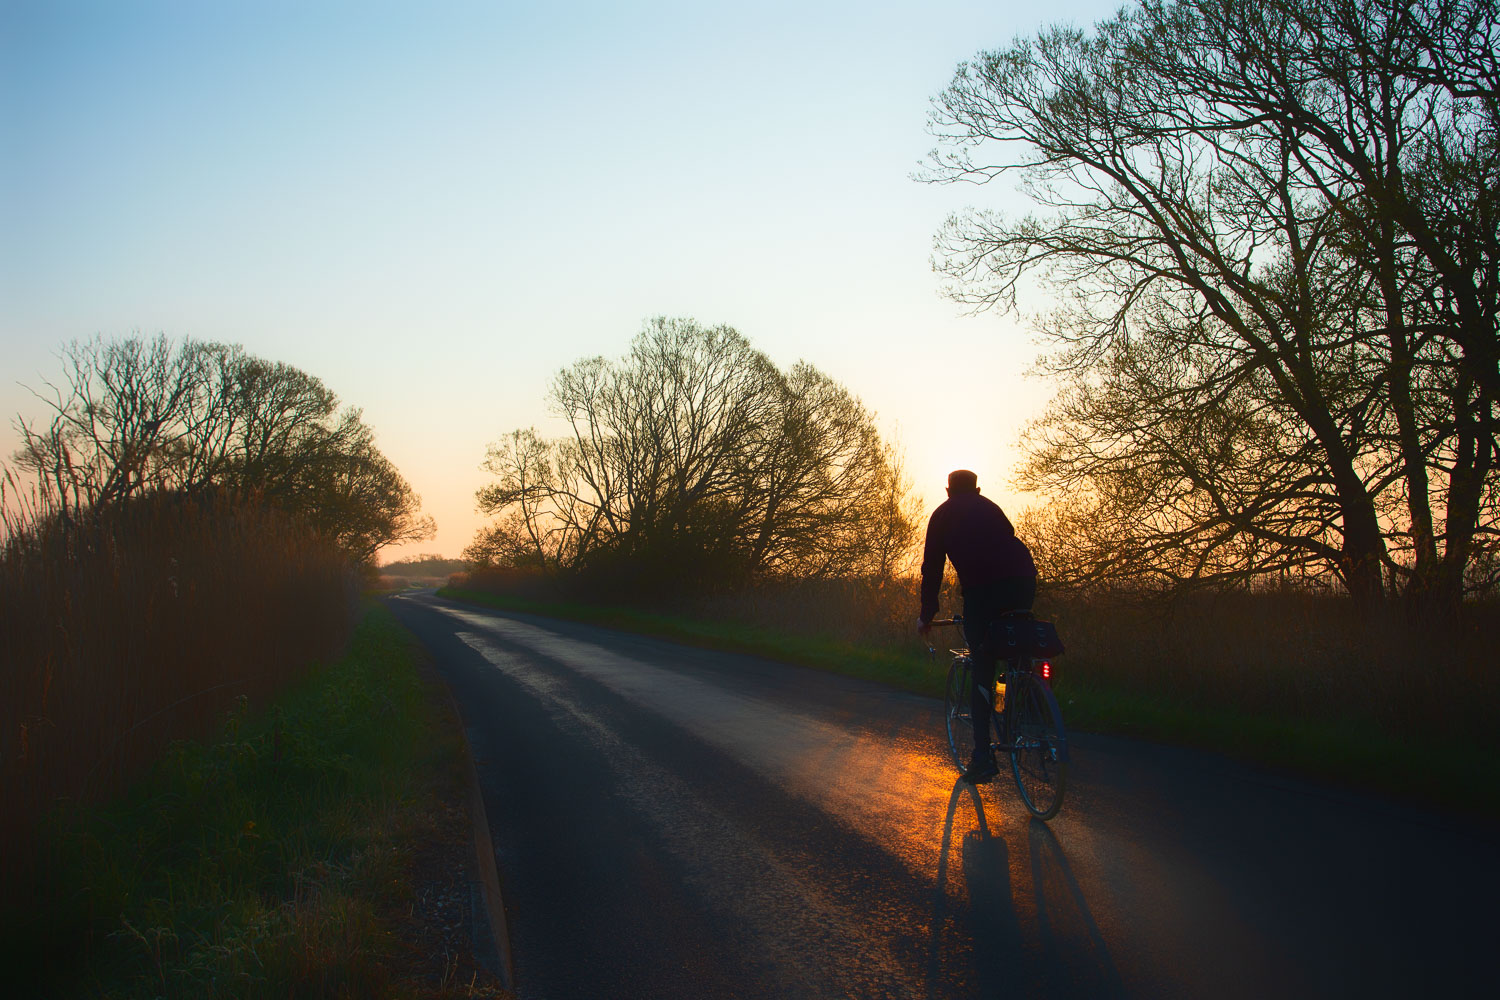 Cyclist pedalling into sunrise on open country road